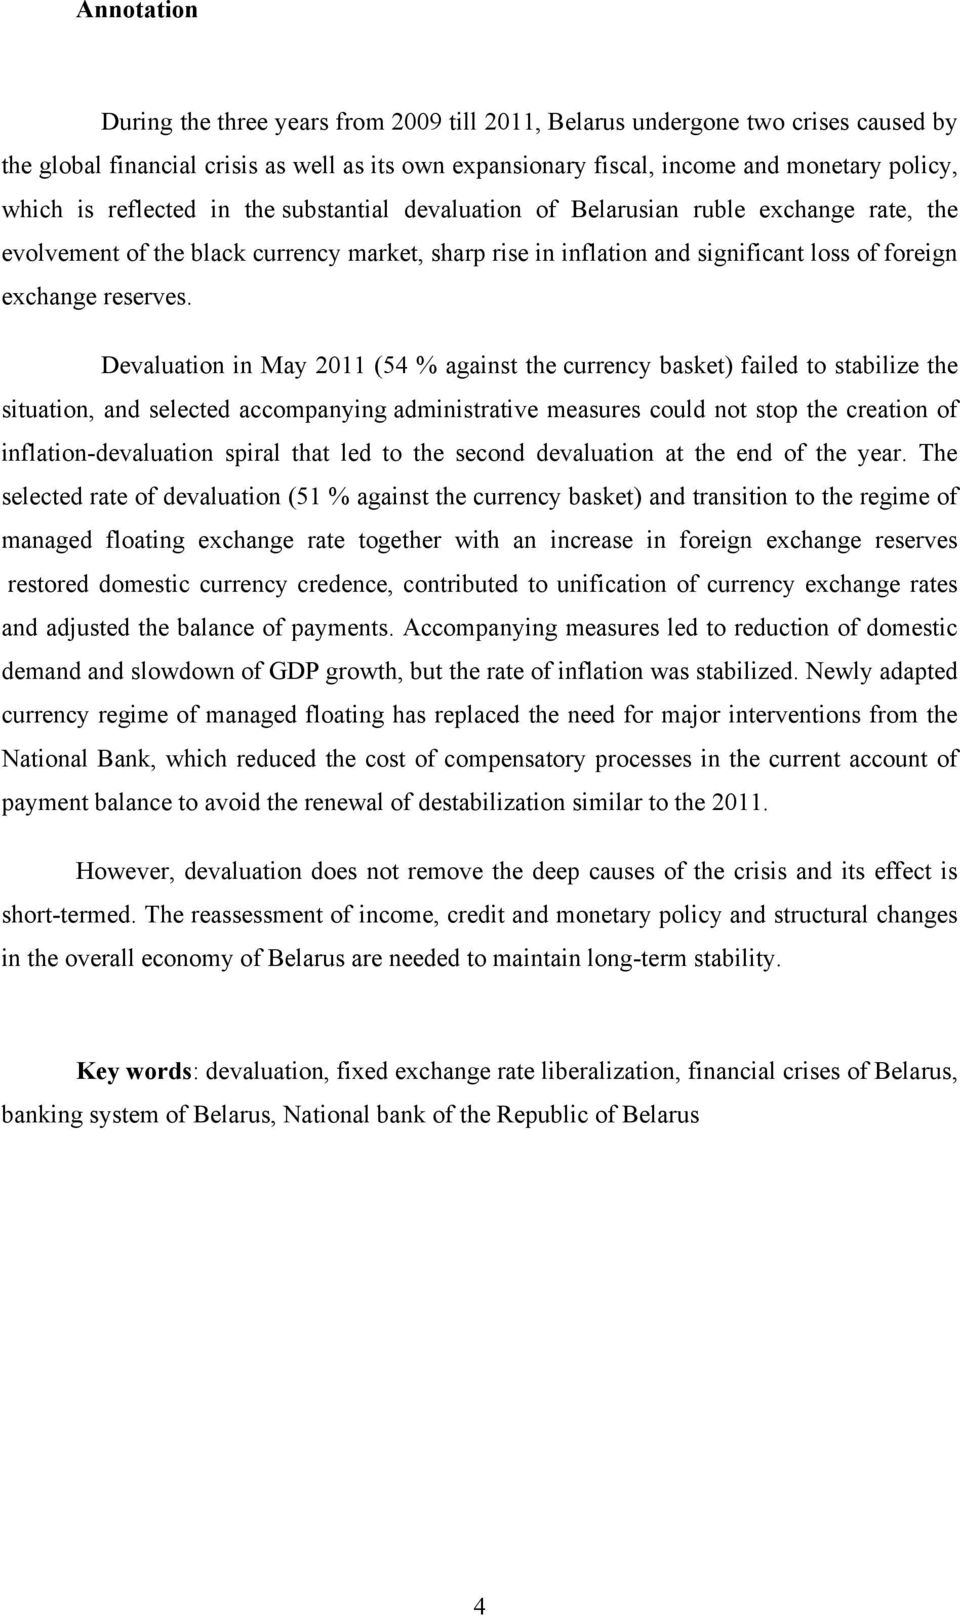 Devaluation in May 2011 (54 % against the currency basket) failed to stabilize the situation, and selected accompanying administrative measures could not stop the creation of inflation-devaluation